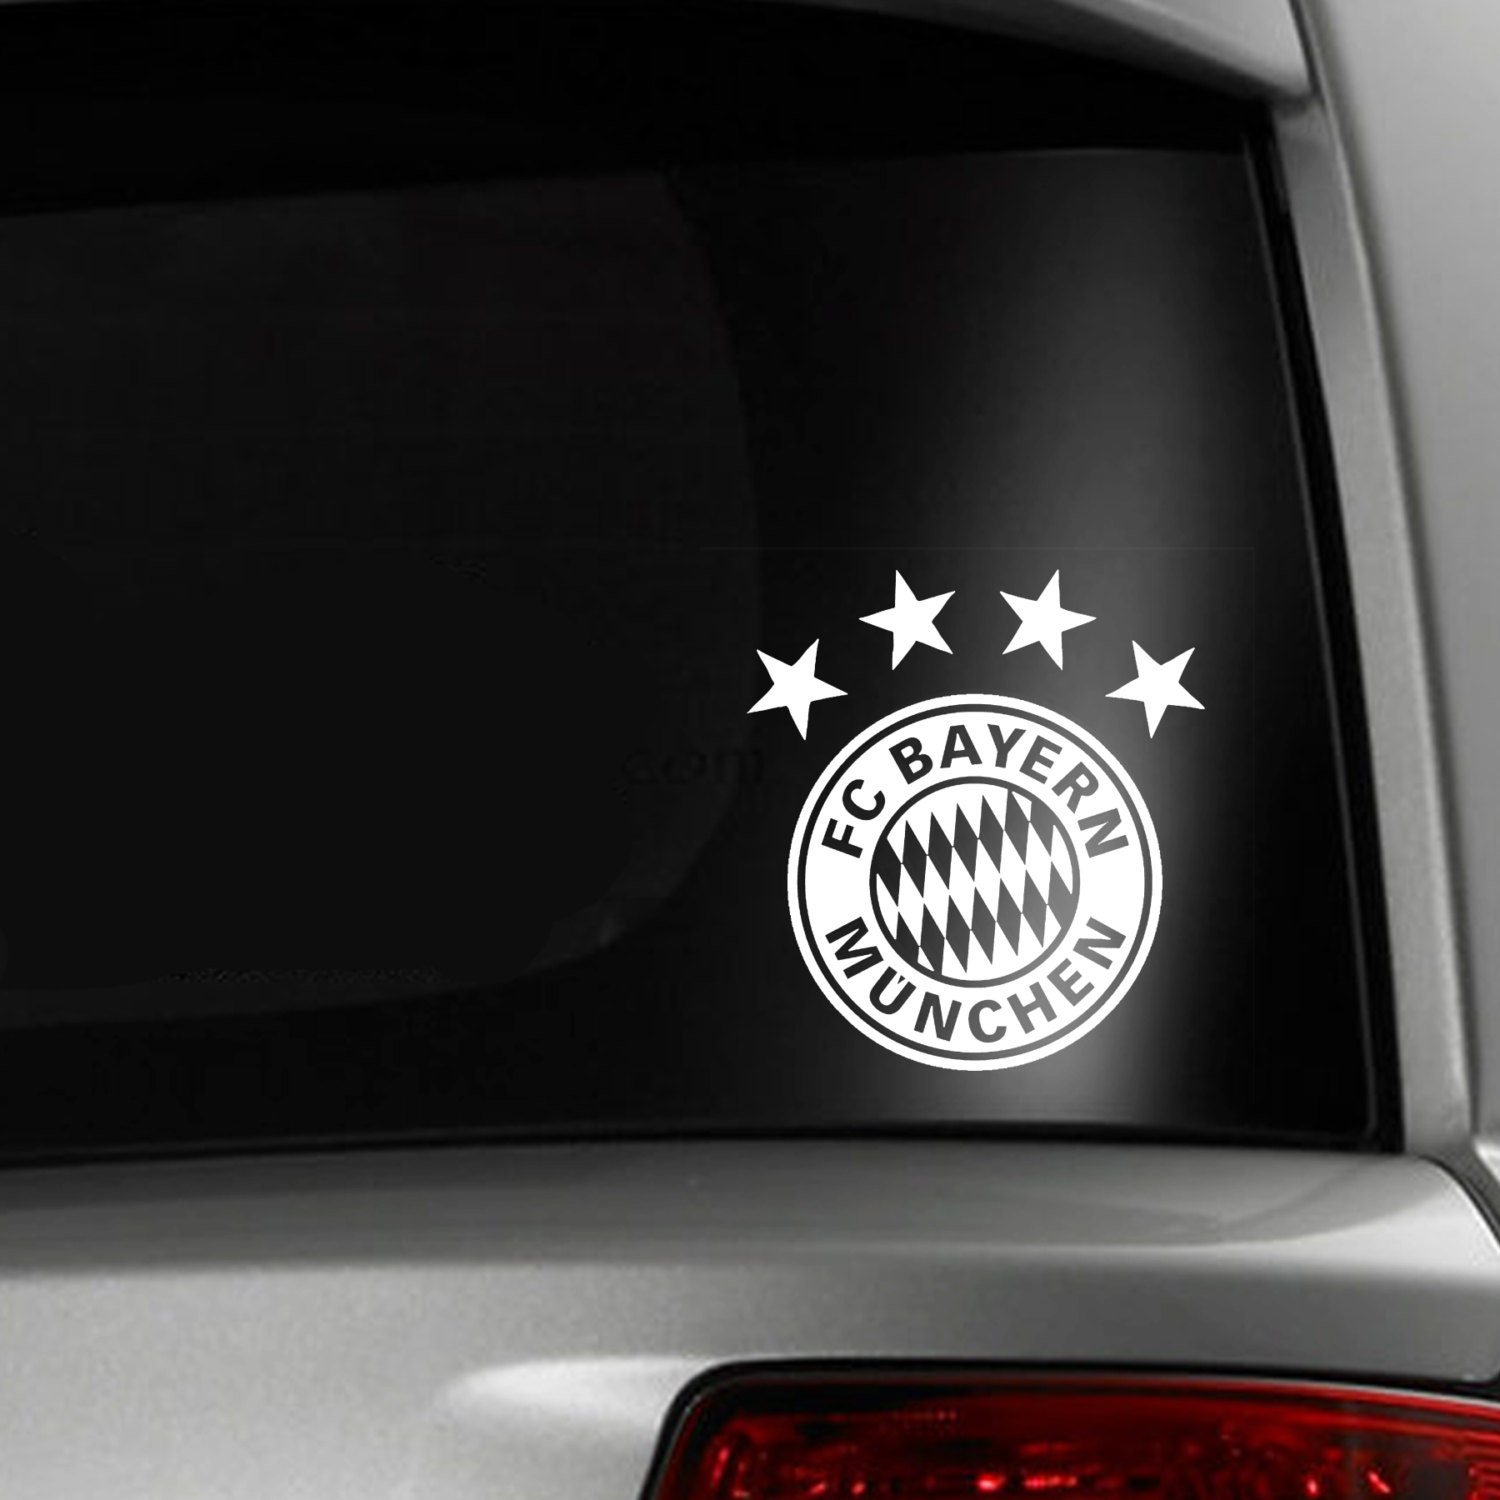 bayern munich soccer fc car window decal. Black Bedroom Furniture Sets. Home Design Ideas